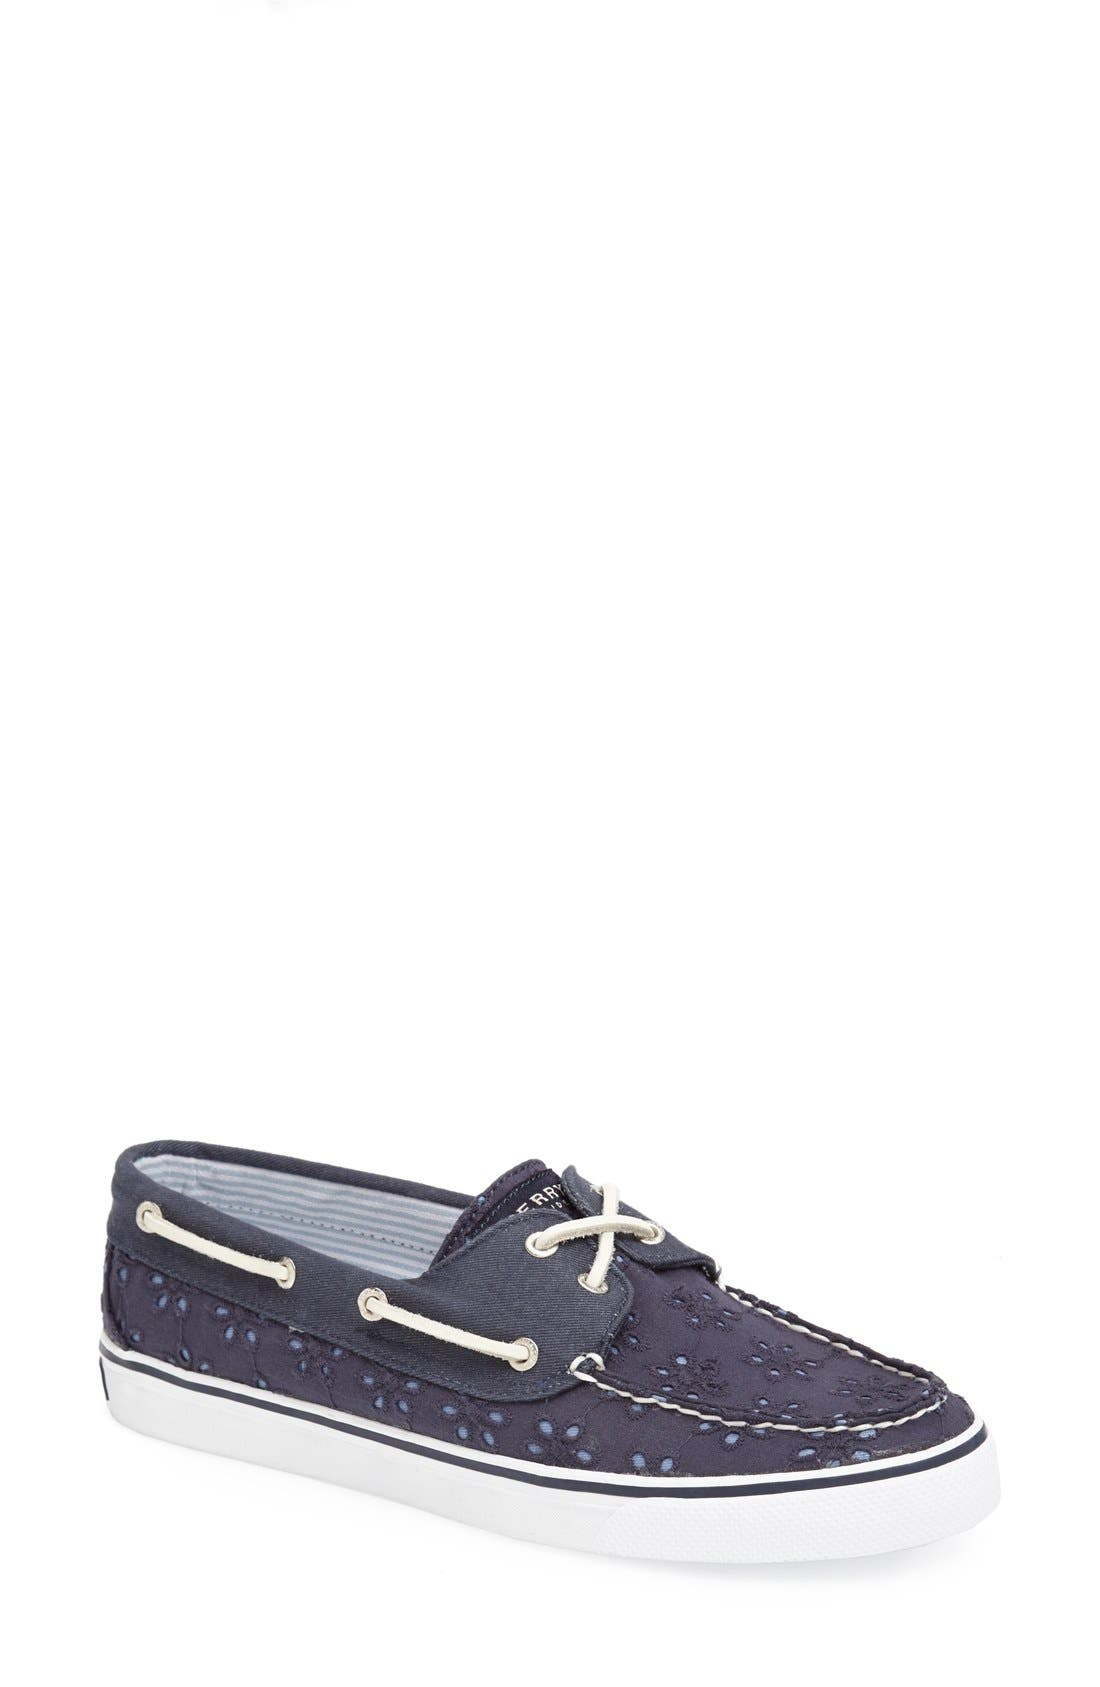 Top-Sider<sup>®</sup> 'Bahama' Sequined Boat Shoe,                             Main thumbnail 30, color,